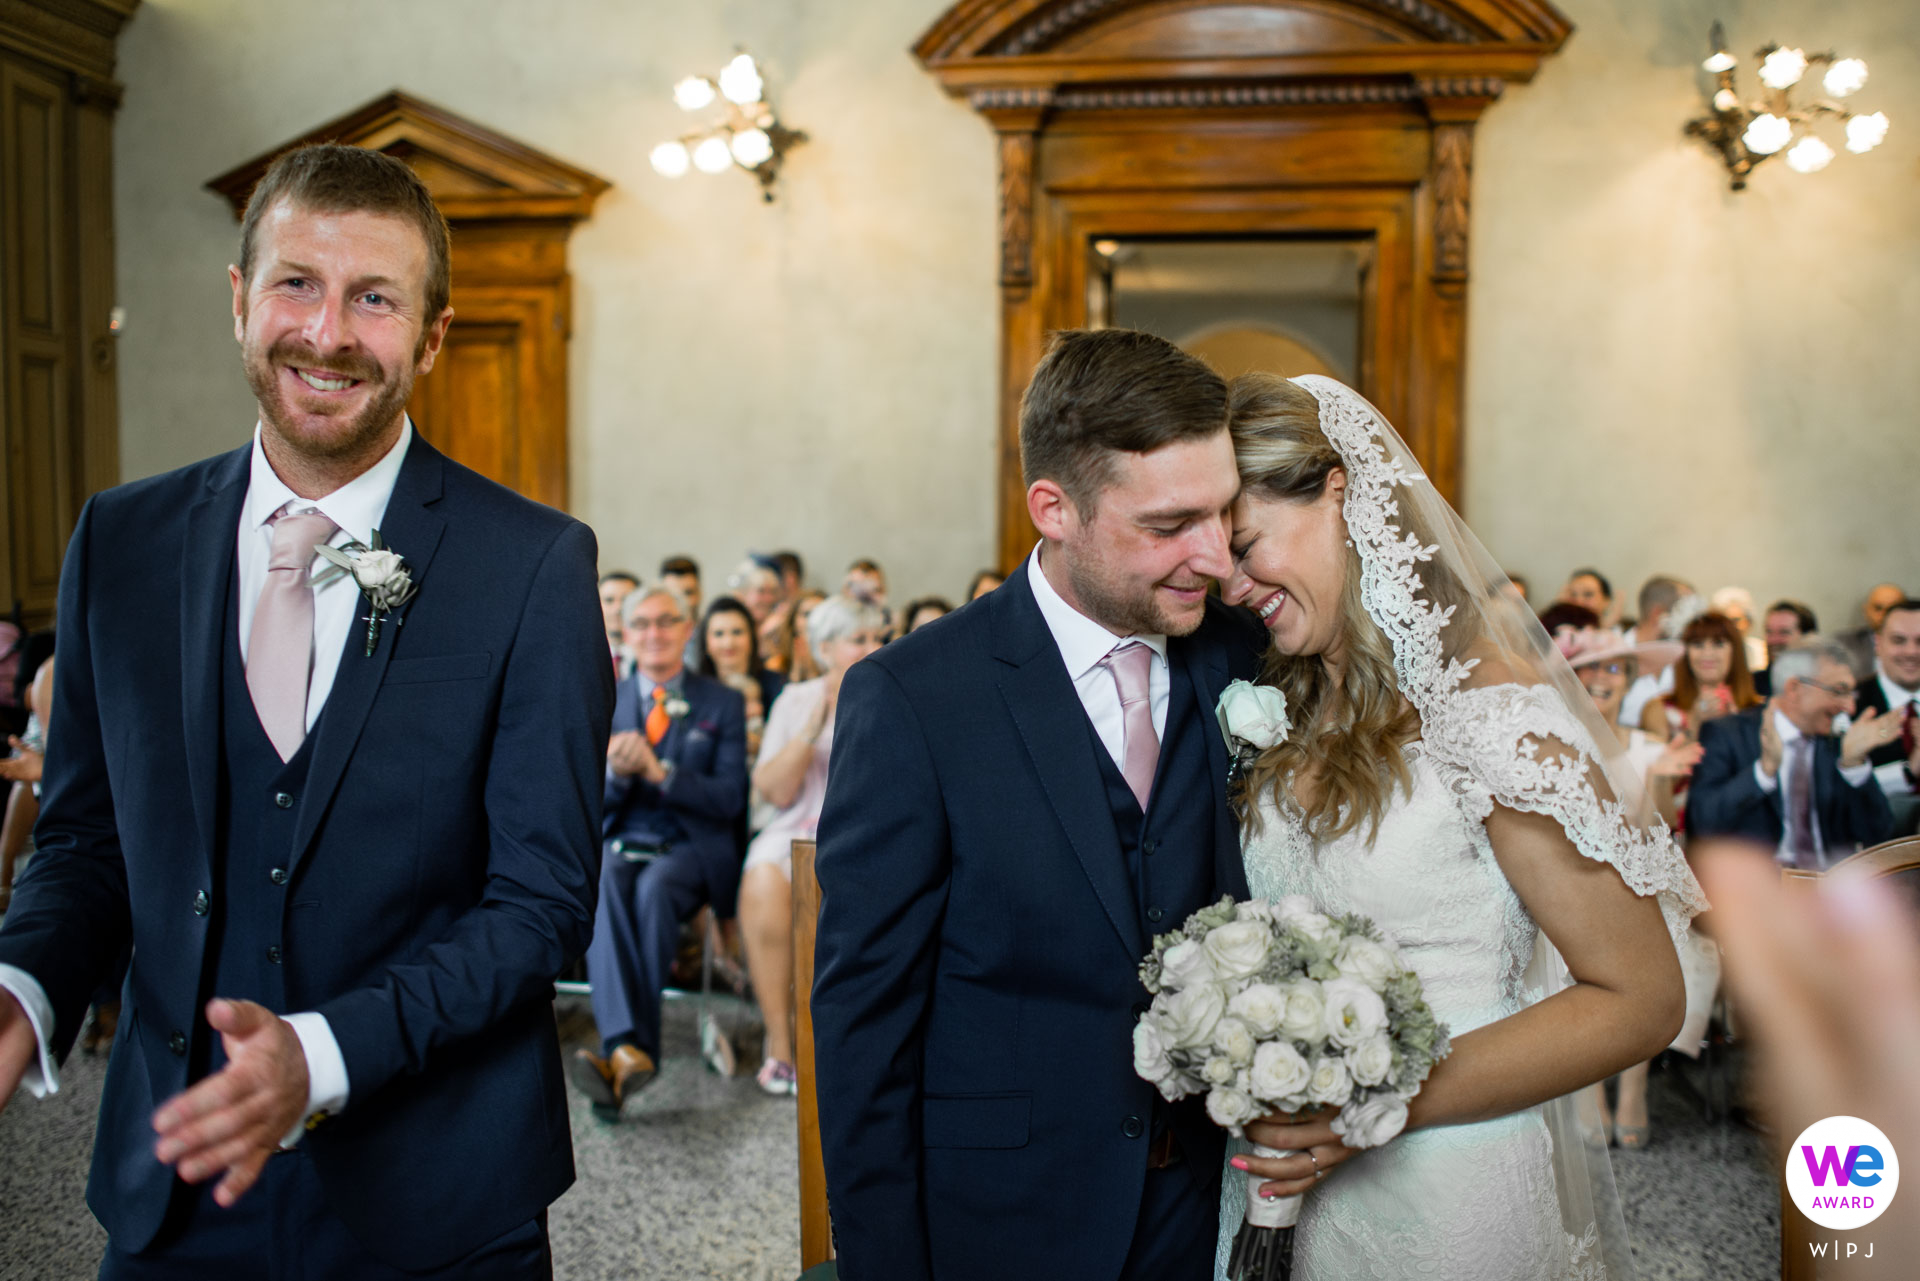 Town Hall of Salò, Brescia, Italy Elopement Photographer | the bride and groom hug for the first time on their wedding day